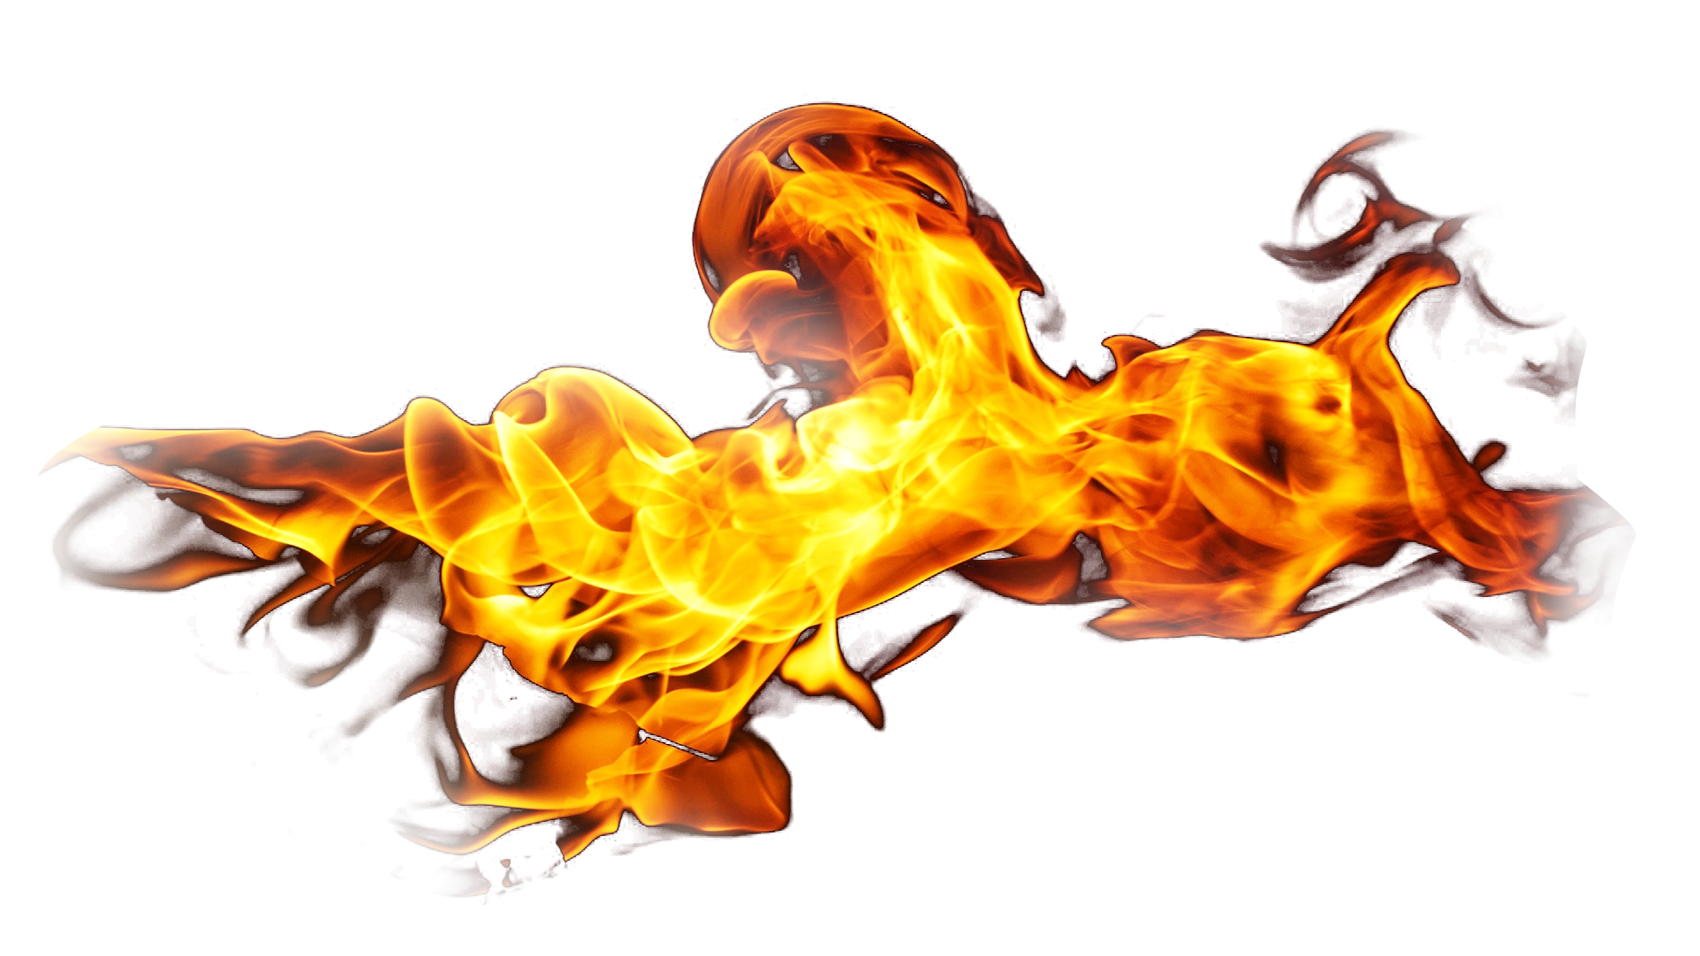 Fire Png Image Pngpix 6782